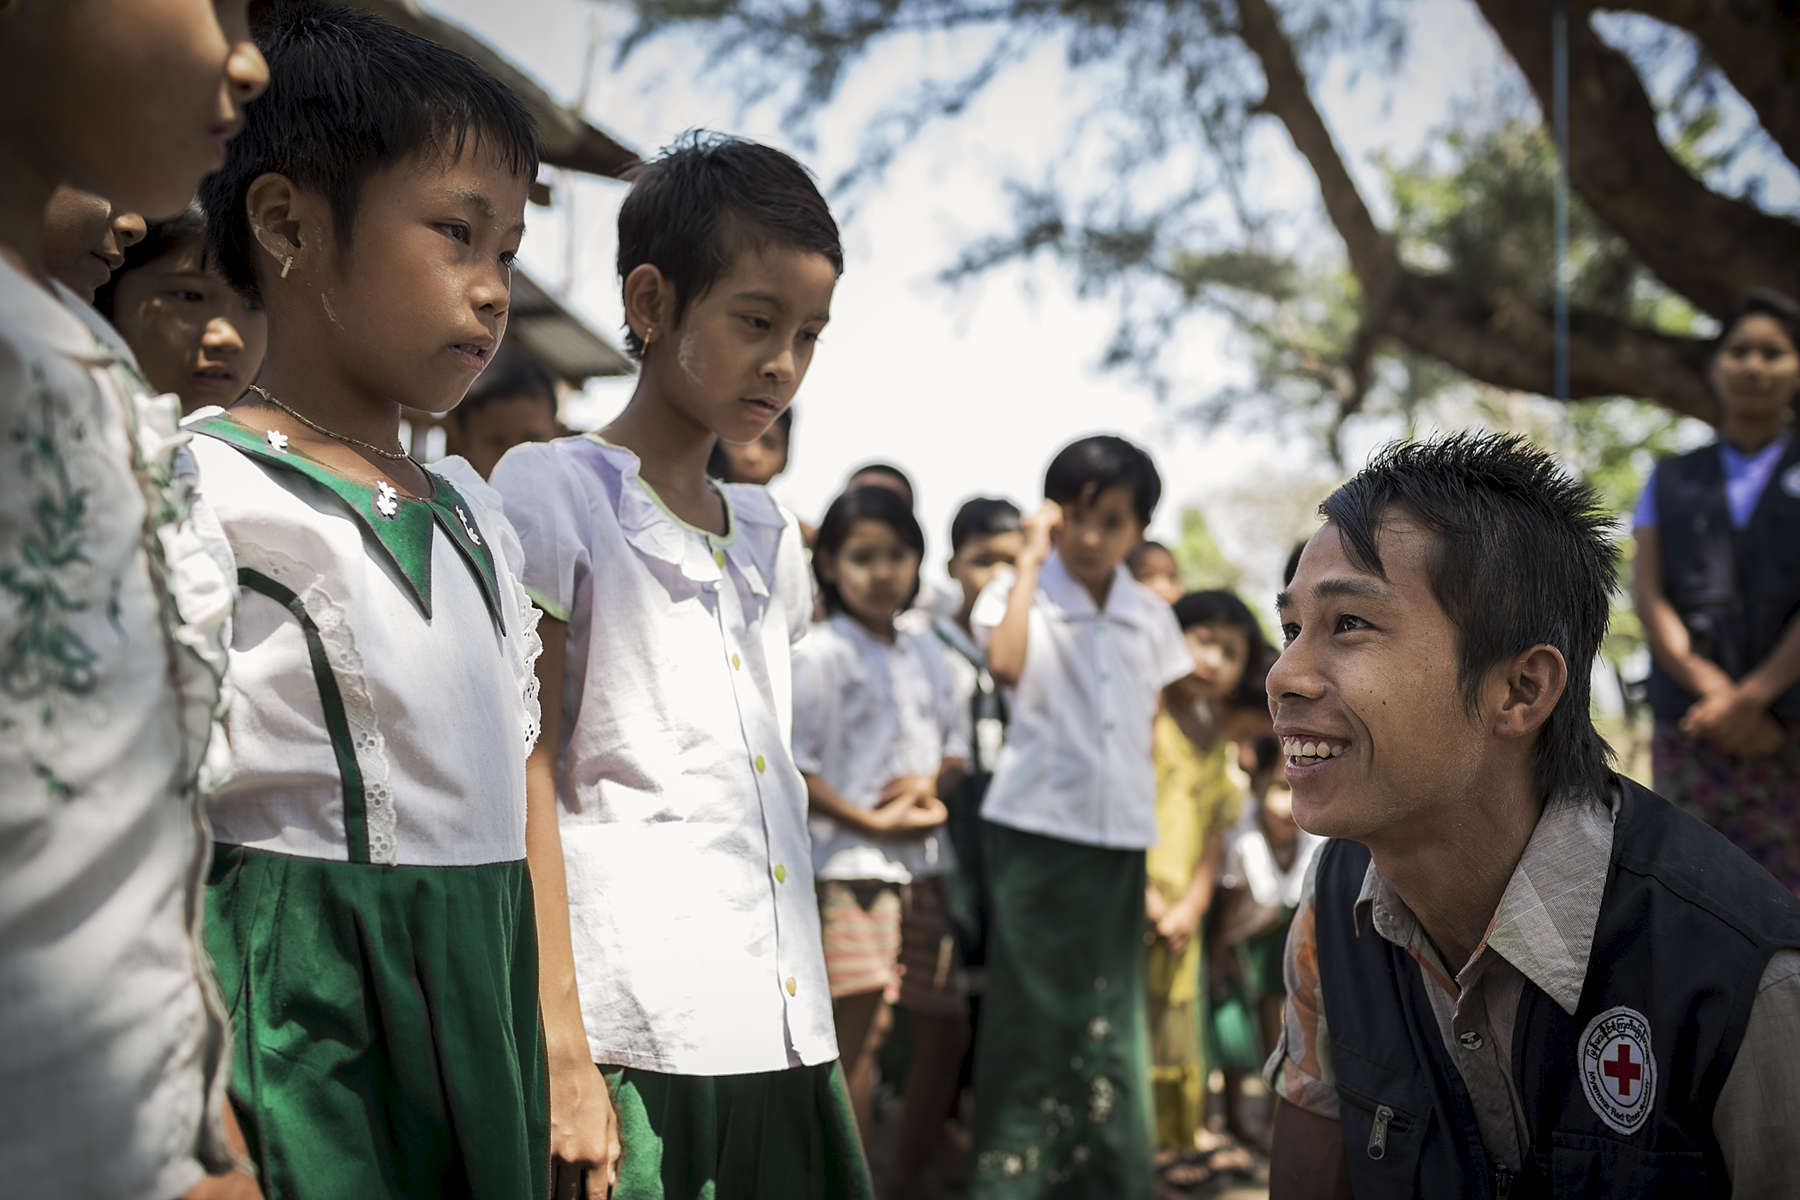 RCV Khin Maung Thet  visits Kwe Ma primary school to present educational songs, games and poems to the children about water and sanitation. Australian Red Cross has been working with Myanmar Red Cross to carry out a Community Based Health & Resilience project in the area. CBHR seeks to educate and ensure sustainable changes to water and sanitation practices in the villages where they are working. A major part of the project is community education. Red Cross Volunteers from each community regularly run awareness campaigns throughout their village and regularly visit school where they use songs and poems to educate children about water and sanitation, first aid and disaster risk reduction.